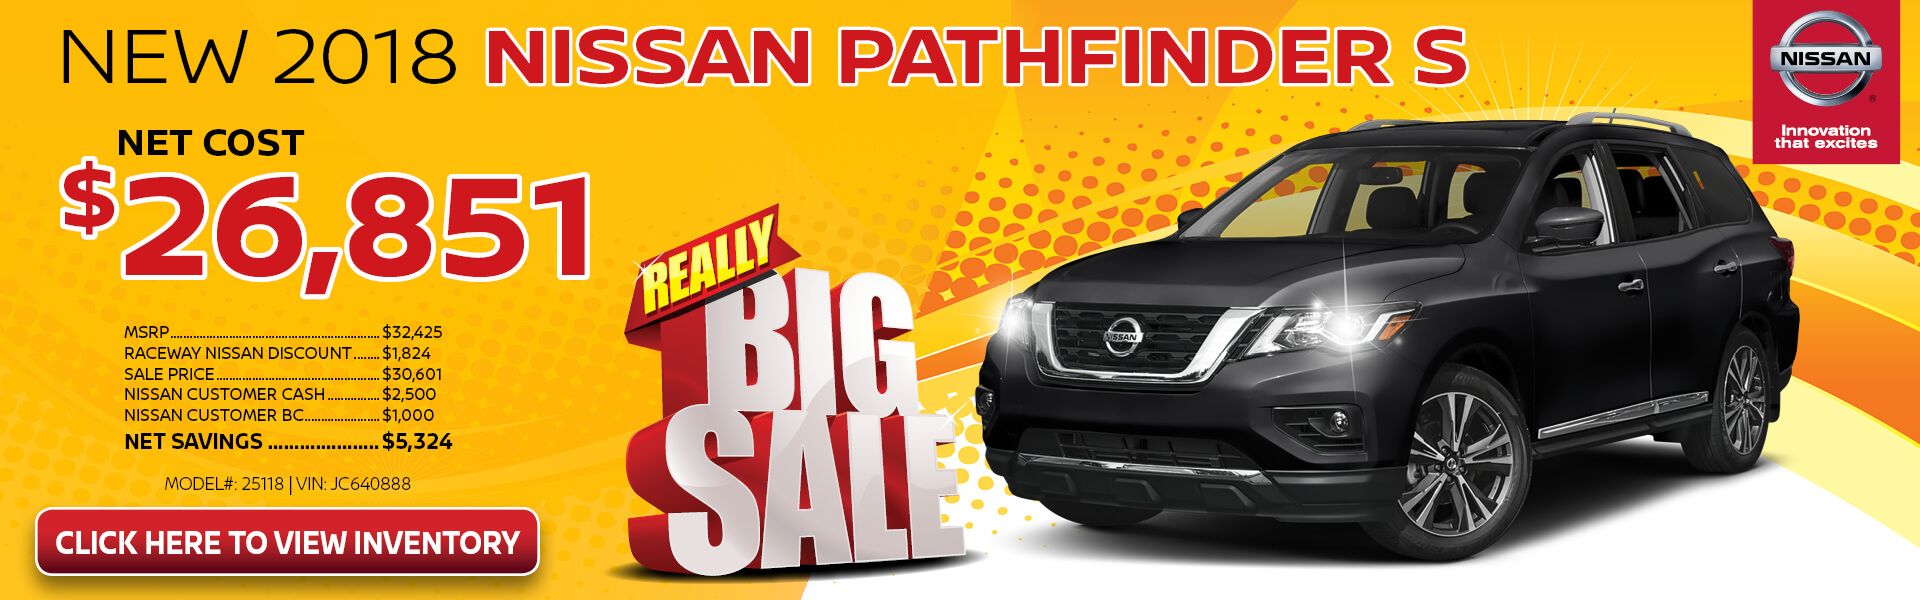 Nissan Pathfinder $26,851 Purchase